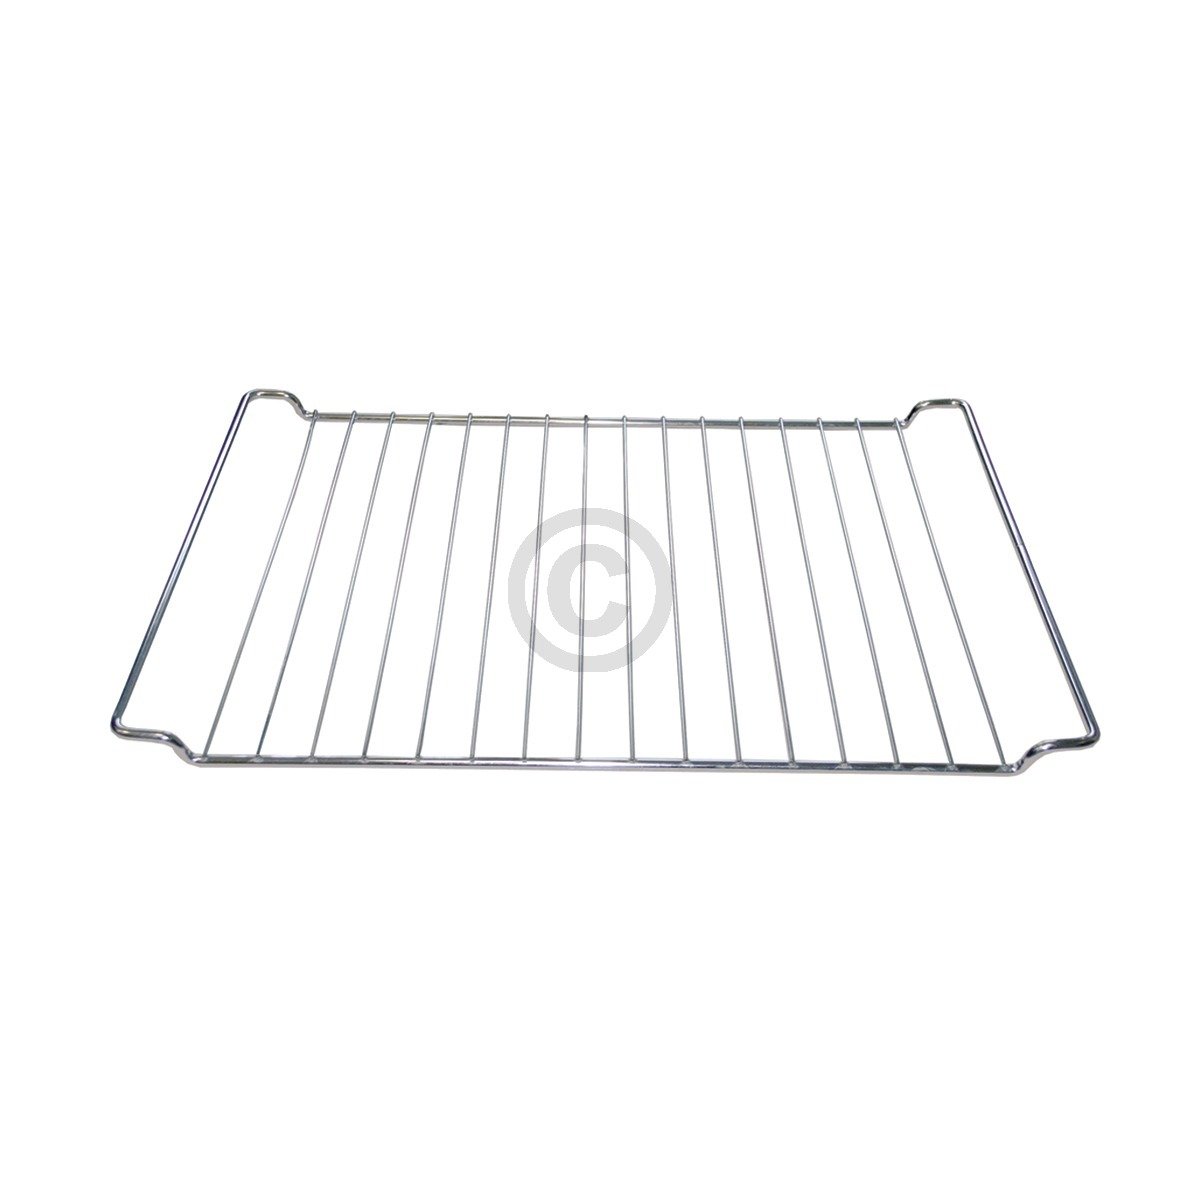 Grillrost 445x340mm, AT! 481245819334